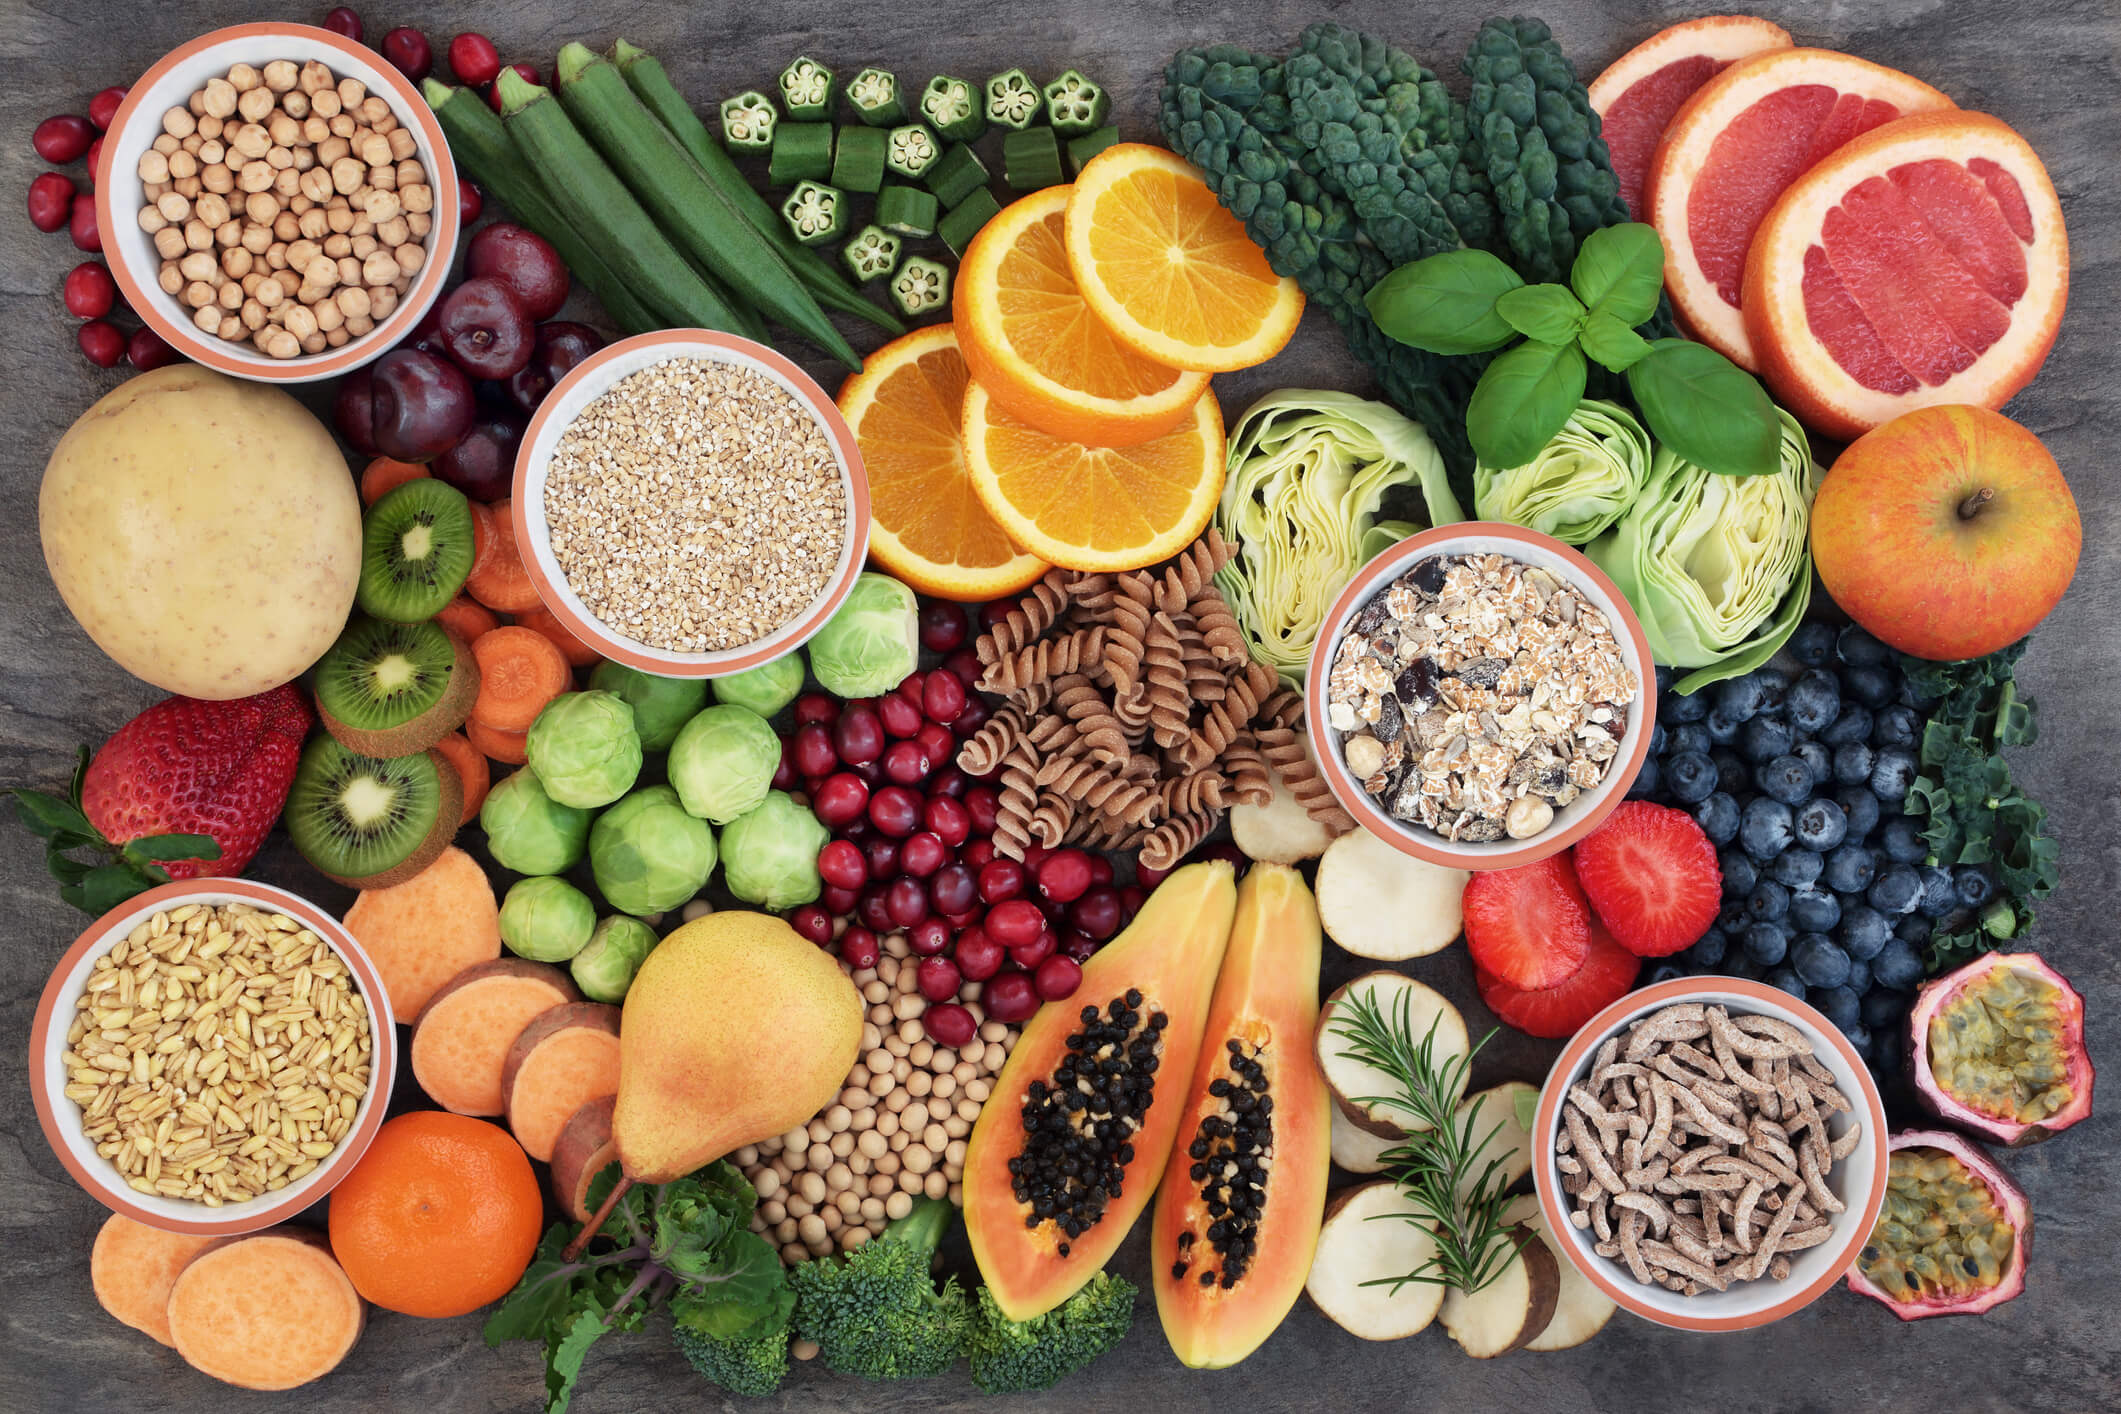 A variety of healthy foods